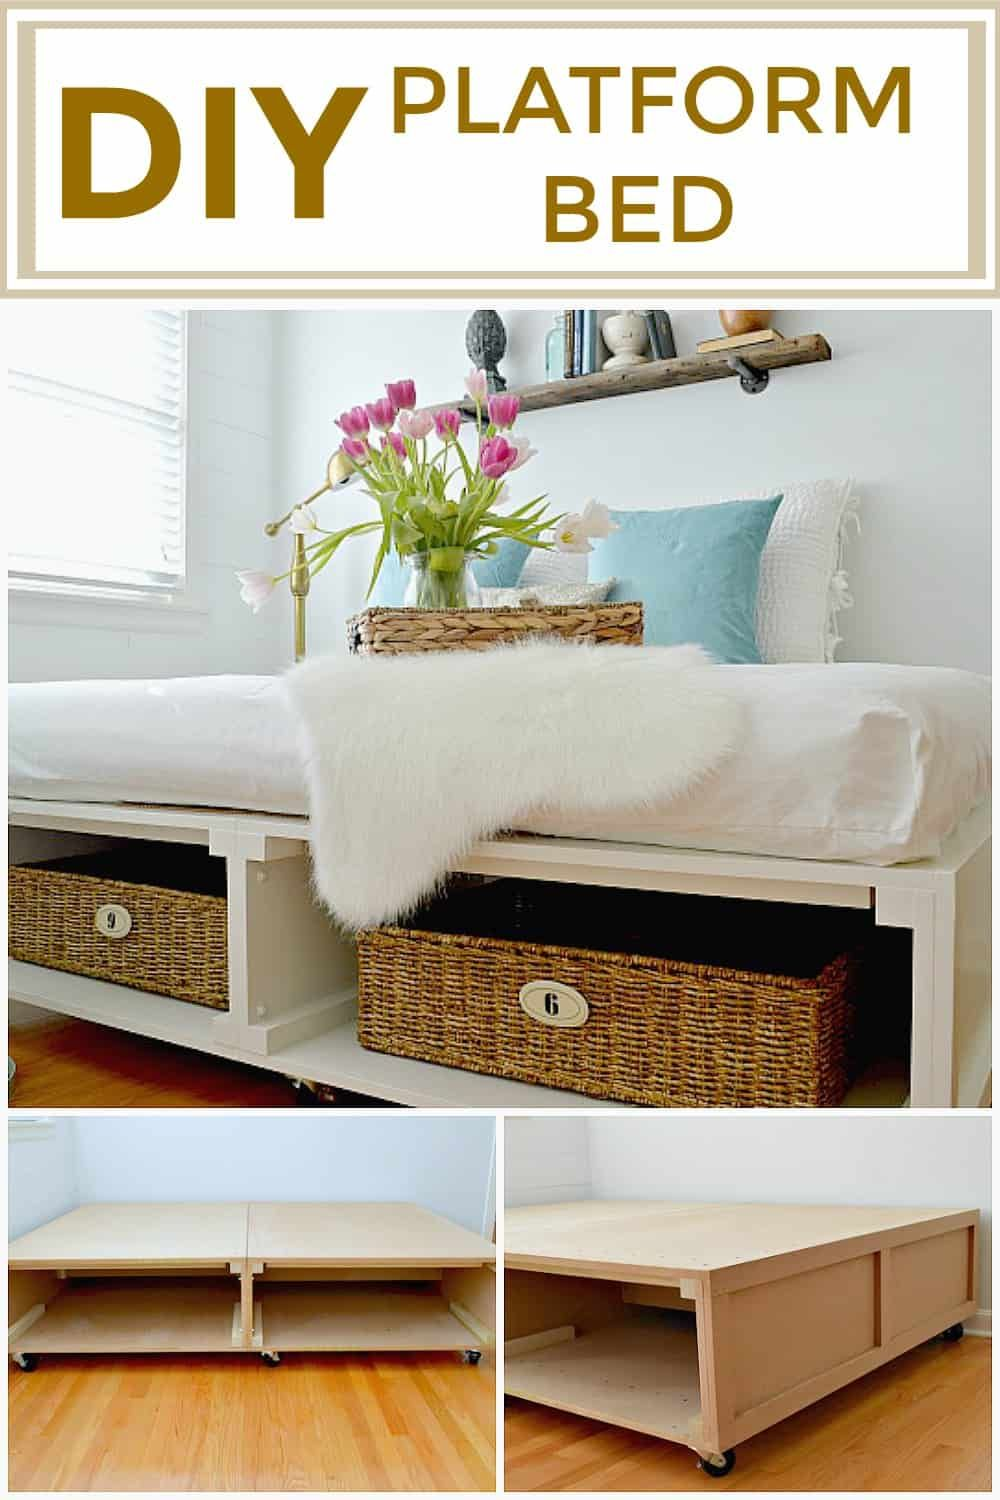 How to build a DIY platform bed frame with storage for a